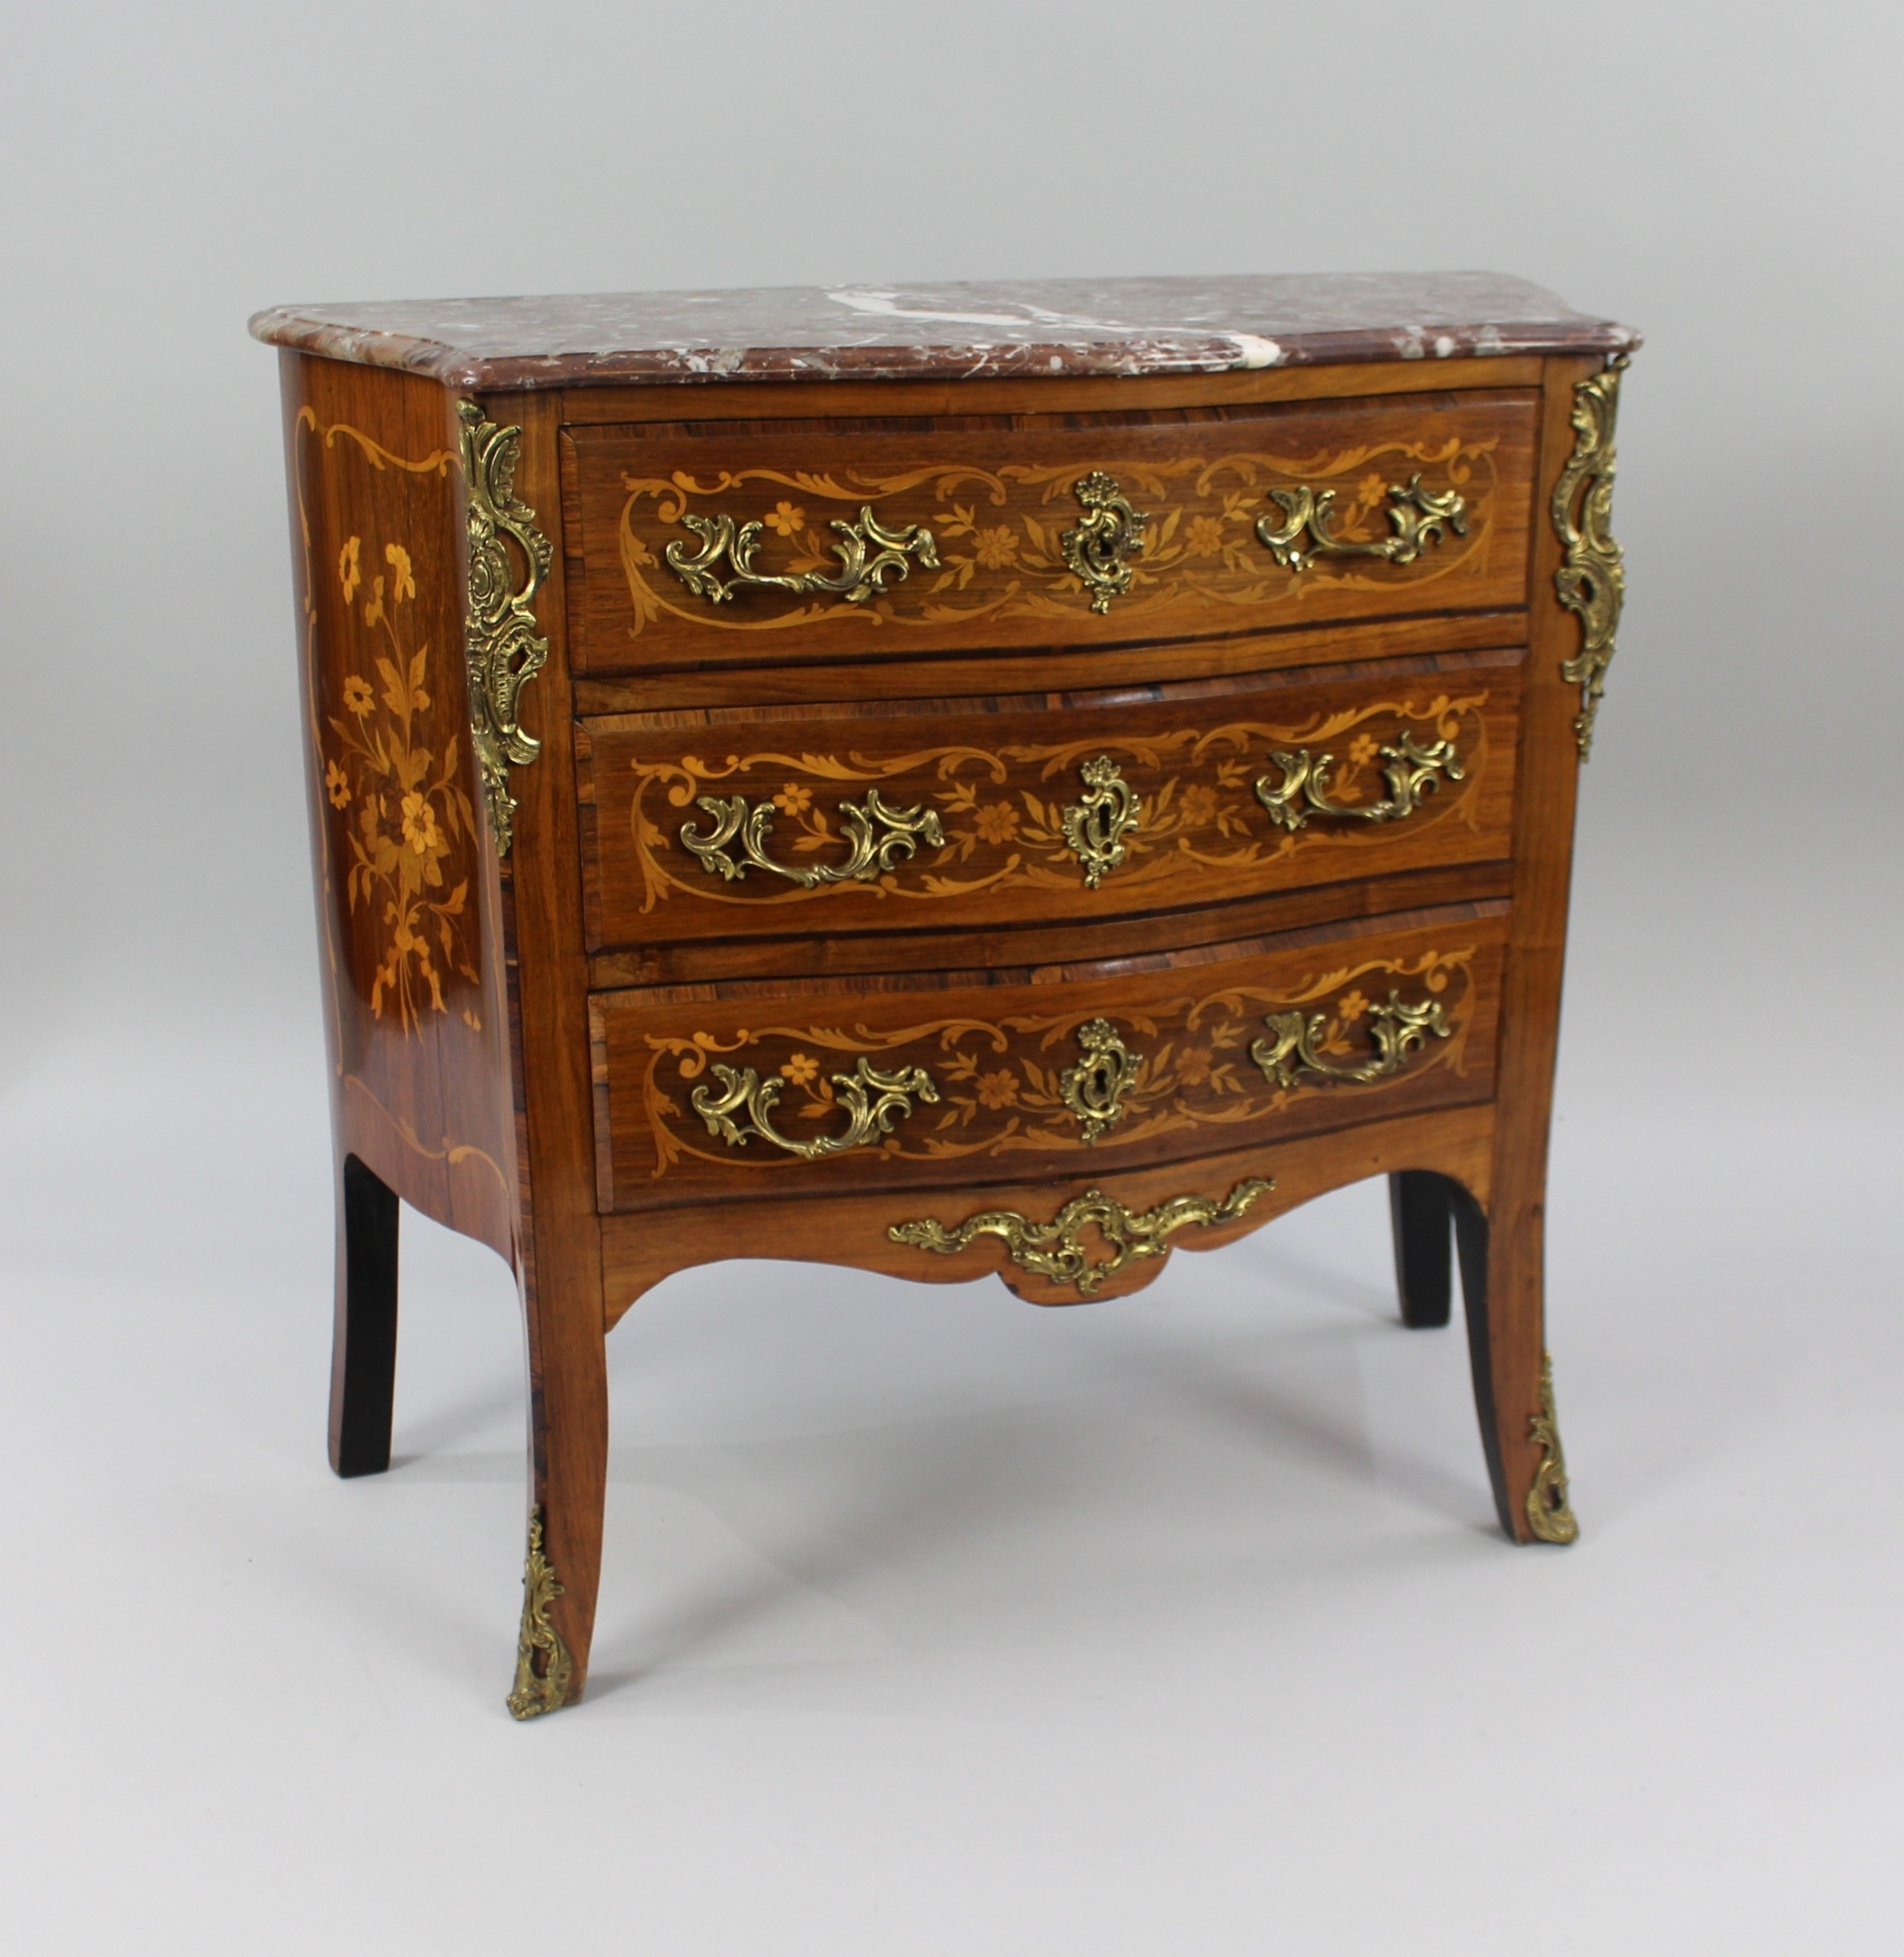 small french marble topped inlaid chest of drawers c1880